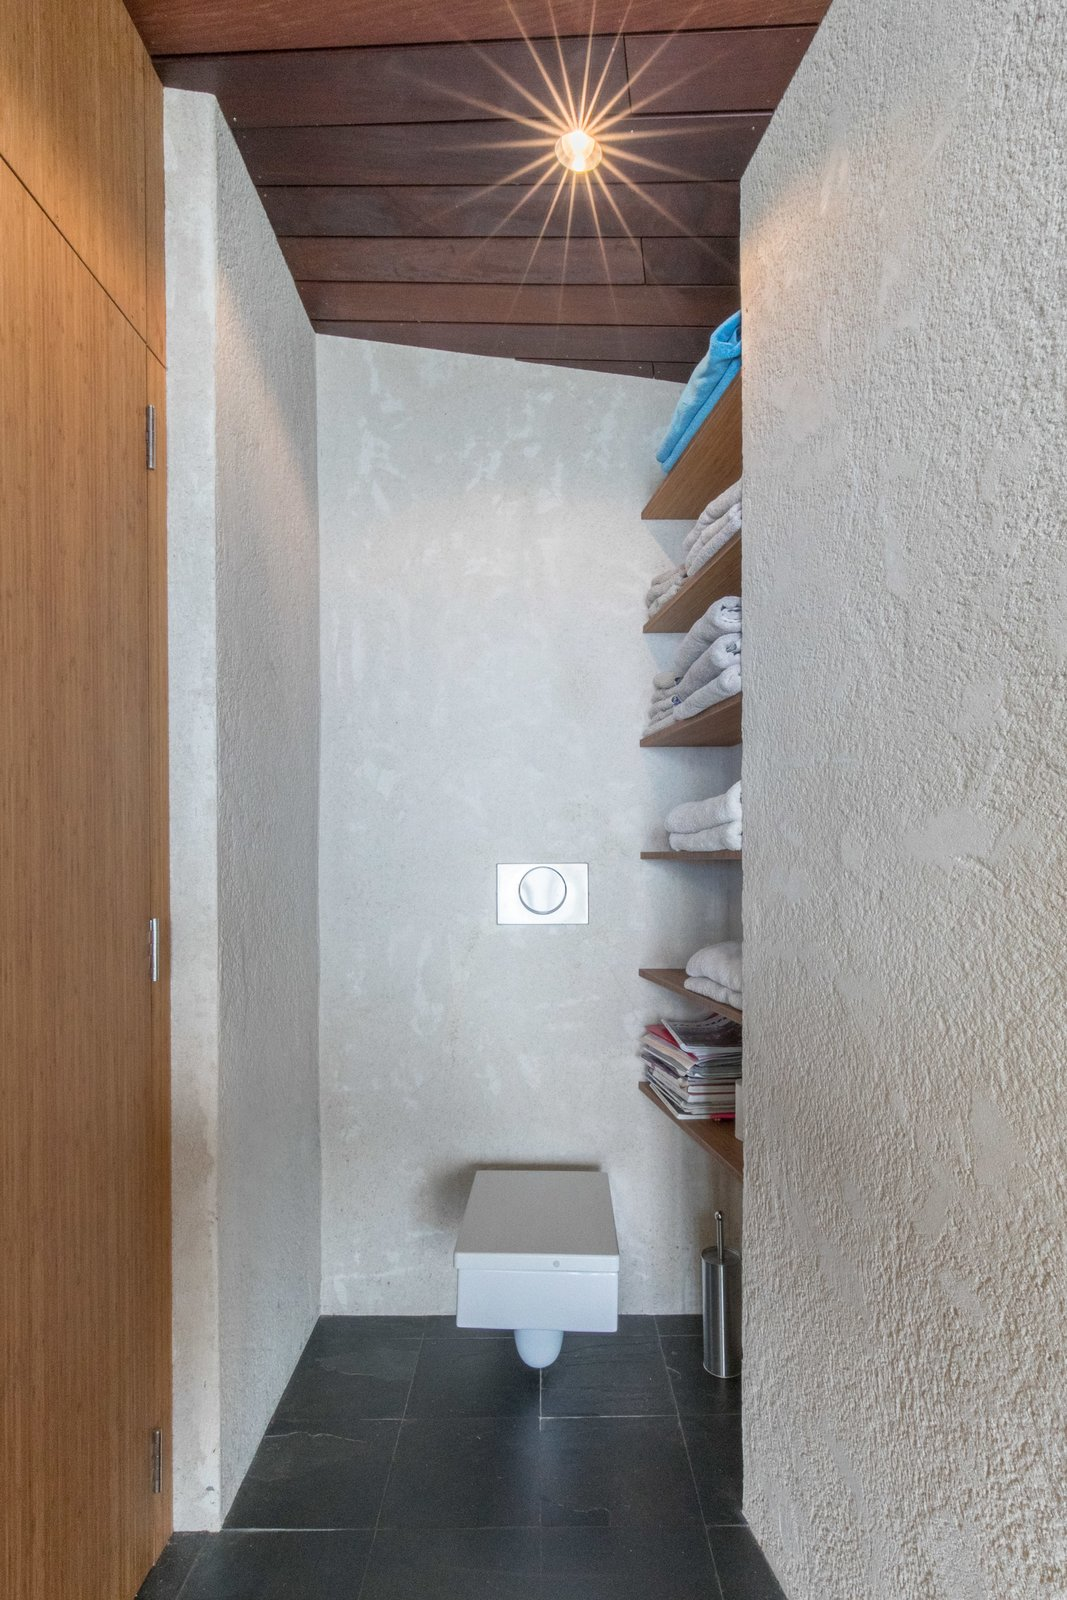 Bath Room, One Piece Toilet, and Accent Lighting  The Clifftop House by Modern on Maui - Liam Ball